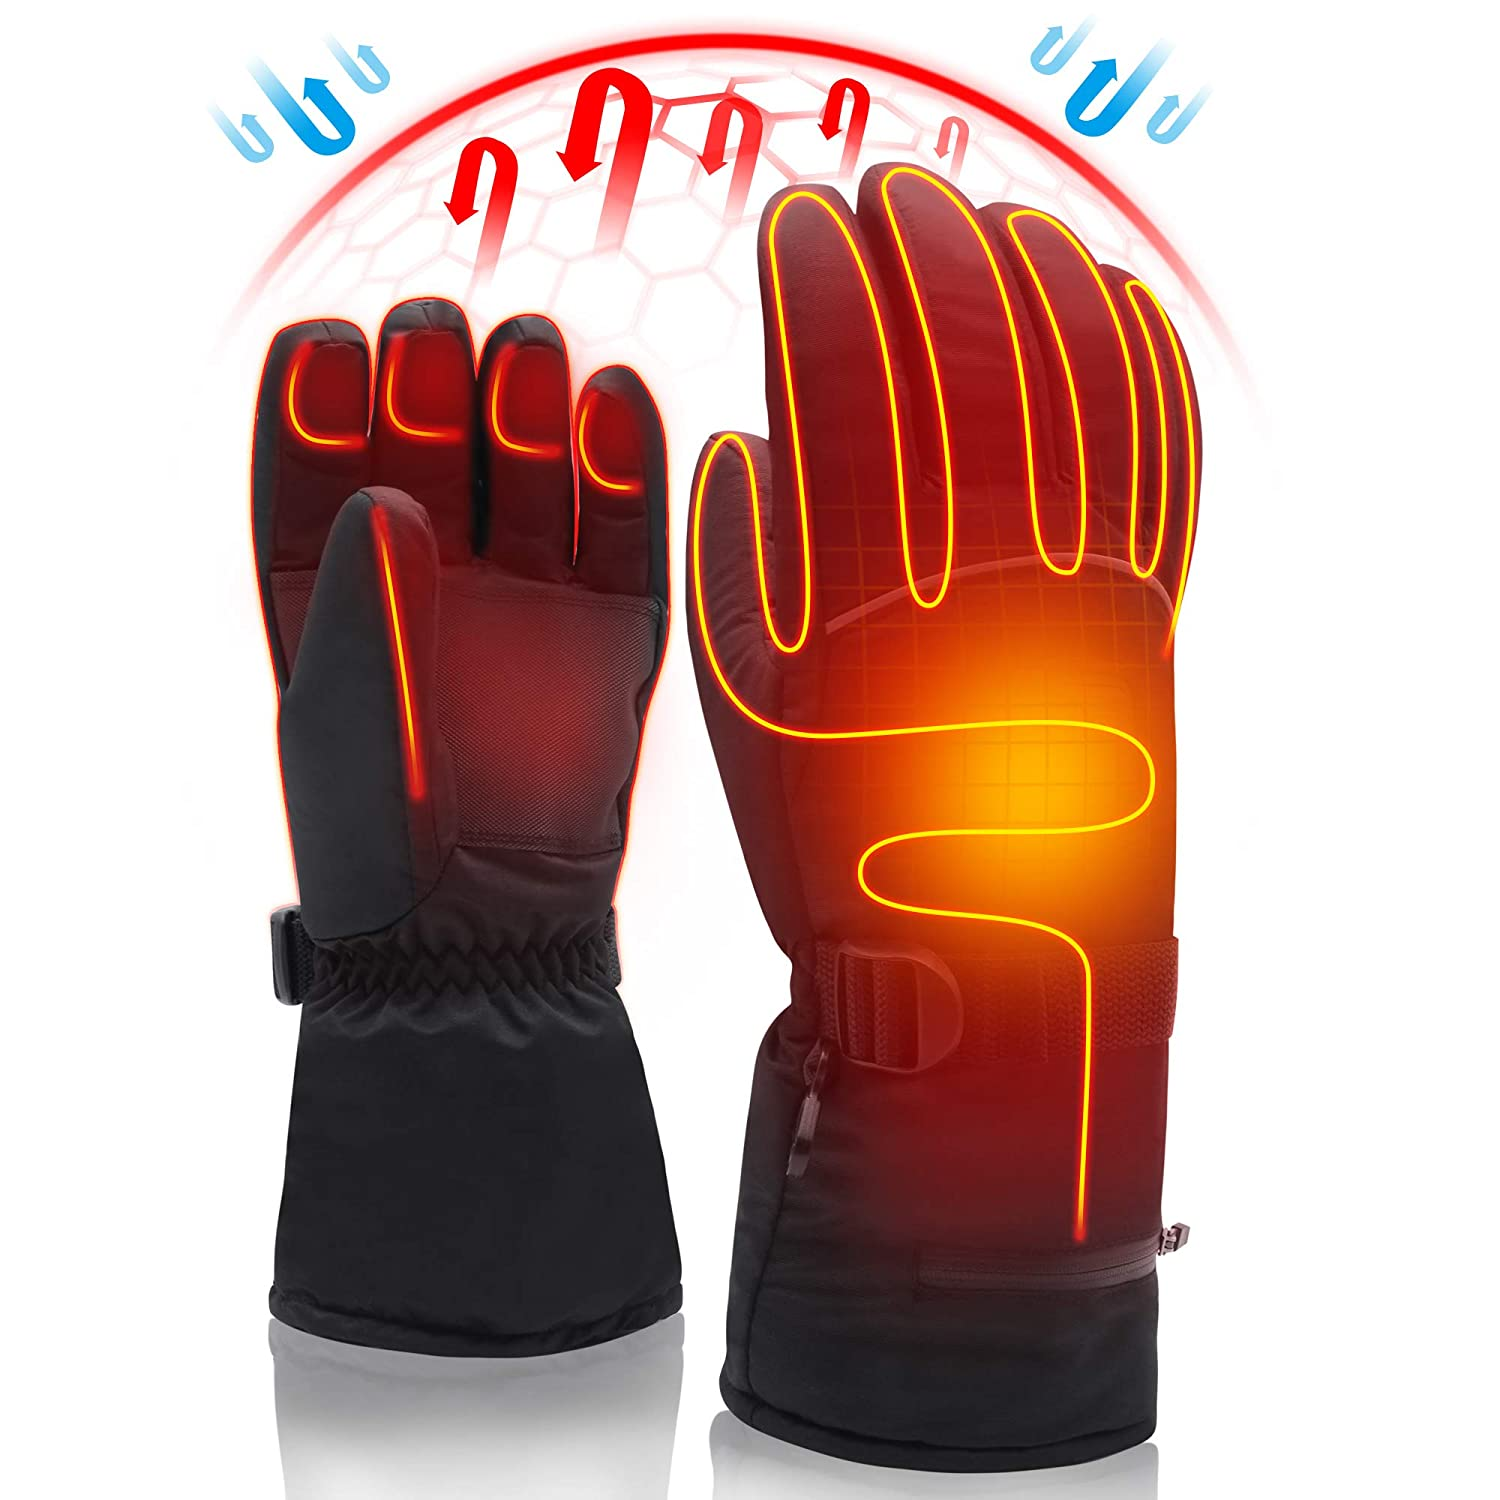 Svpro Men Women Electric Rechargeable Battery Heated Gloves, Cold Weather Thermal Heat Gloves Mittens, Sport Outdoor Warm Winter Heated Gloves, Cycle Motorcycle Drive Camp Hike Ski Heated Handwarmer